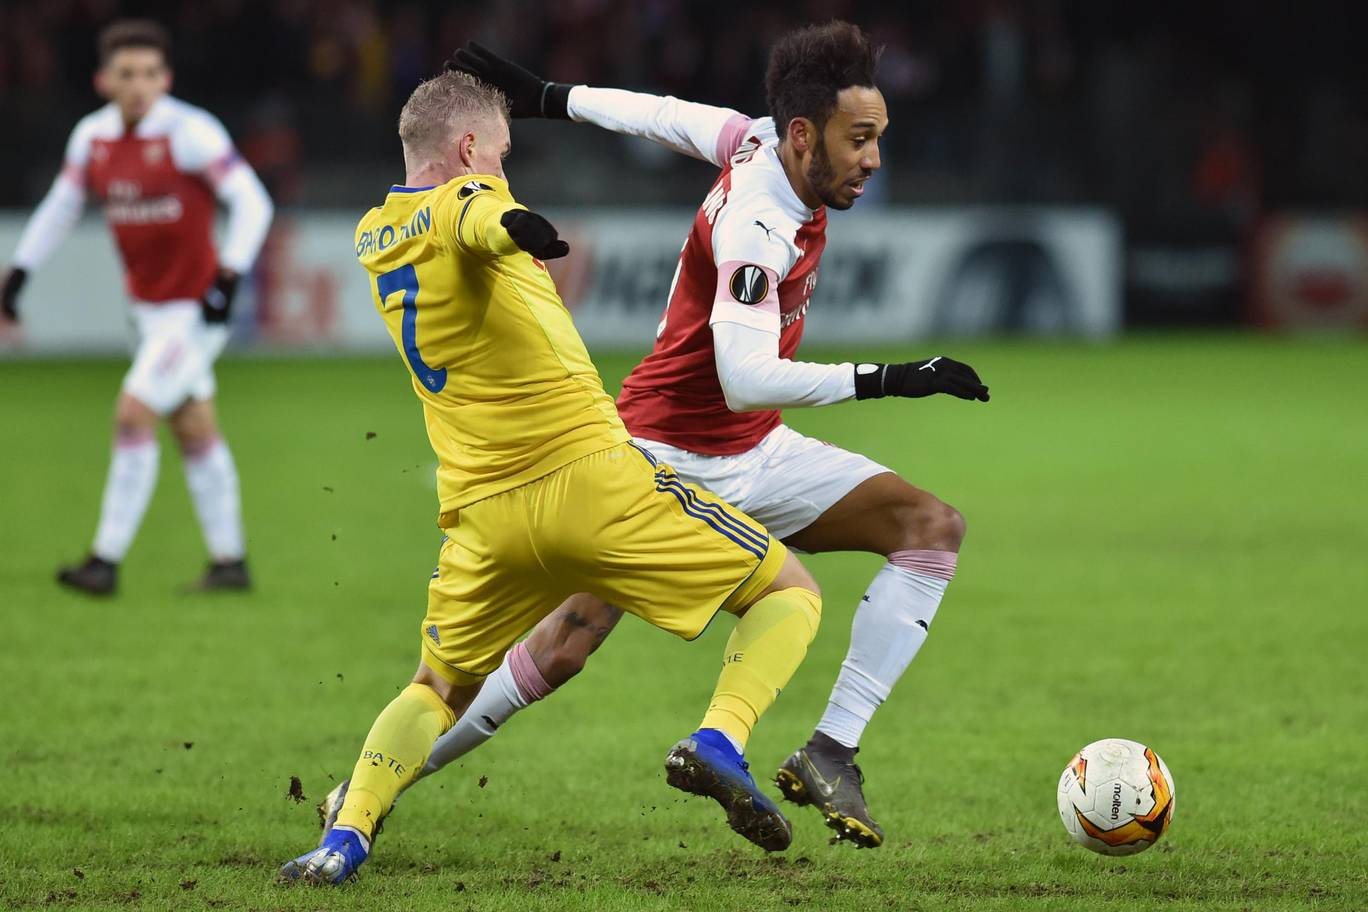 Arsenal lose at BATE as Inter, Sevilla, Benfica win in Europa League